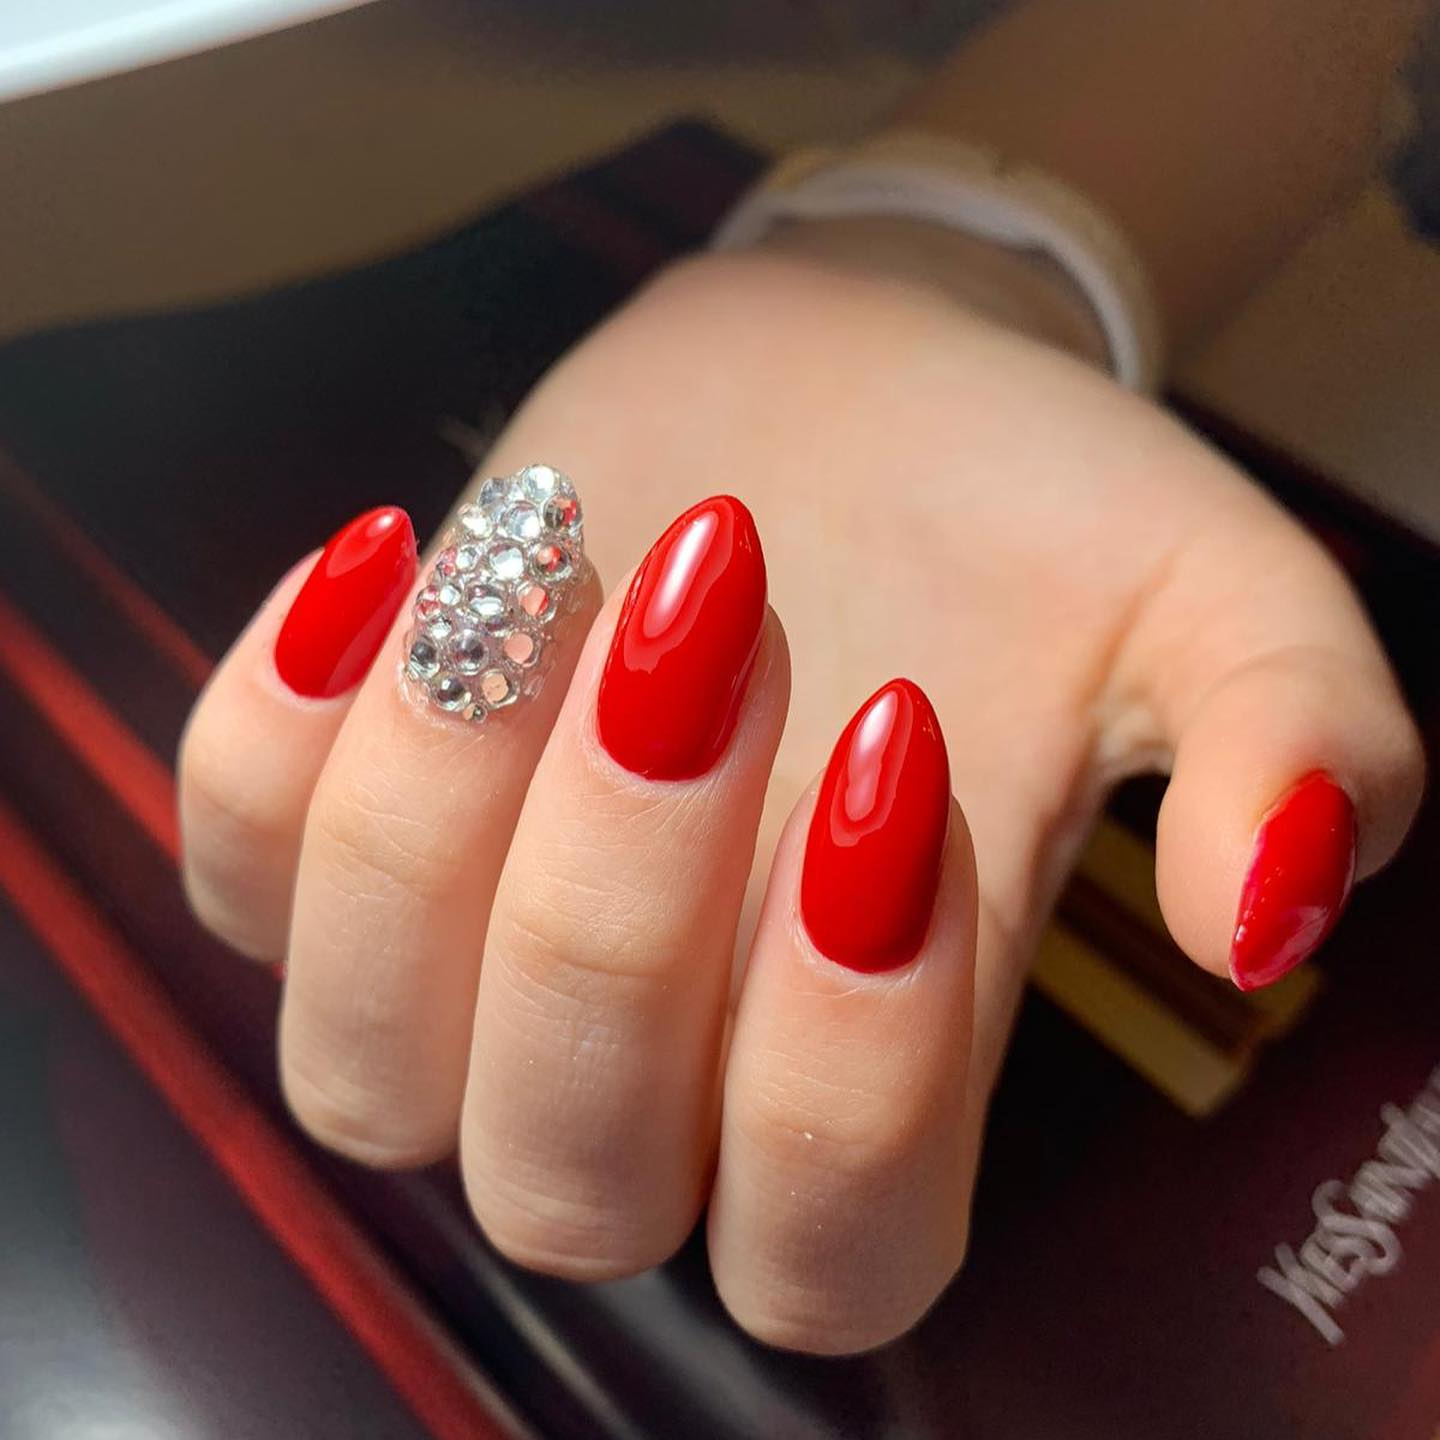 Beautiful Red Nails with Stones